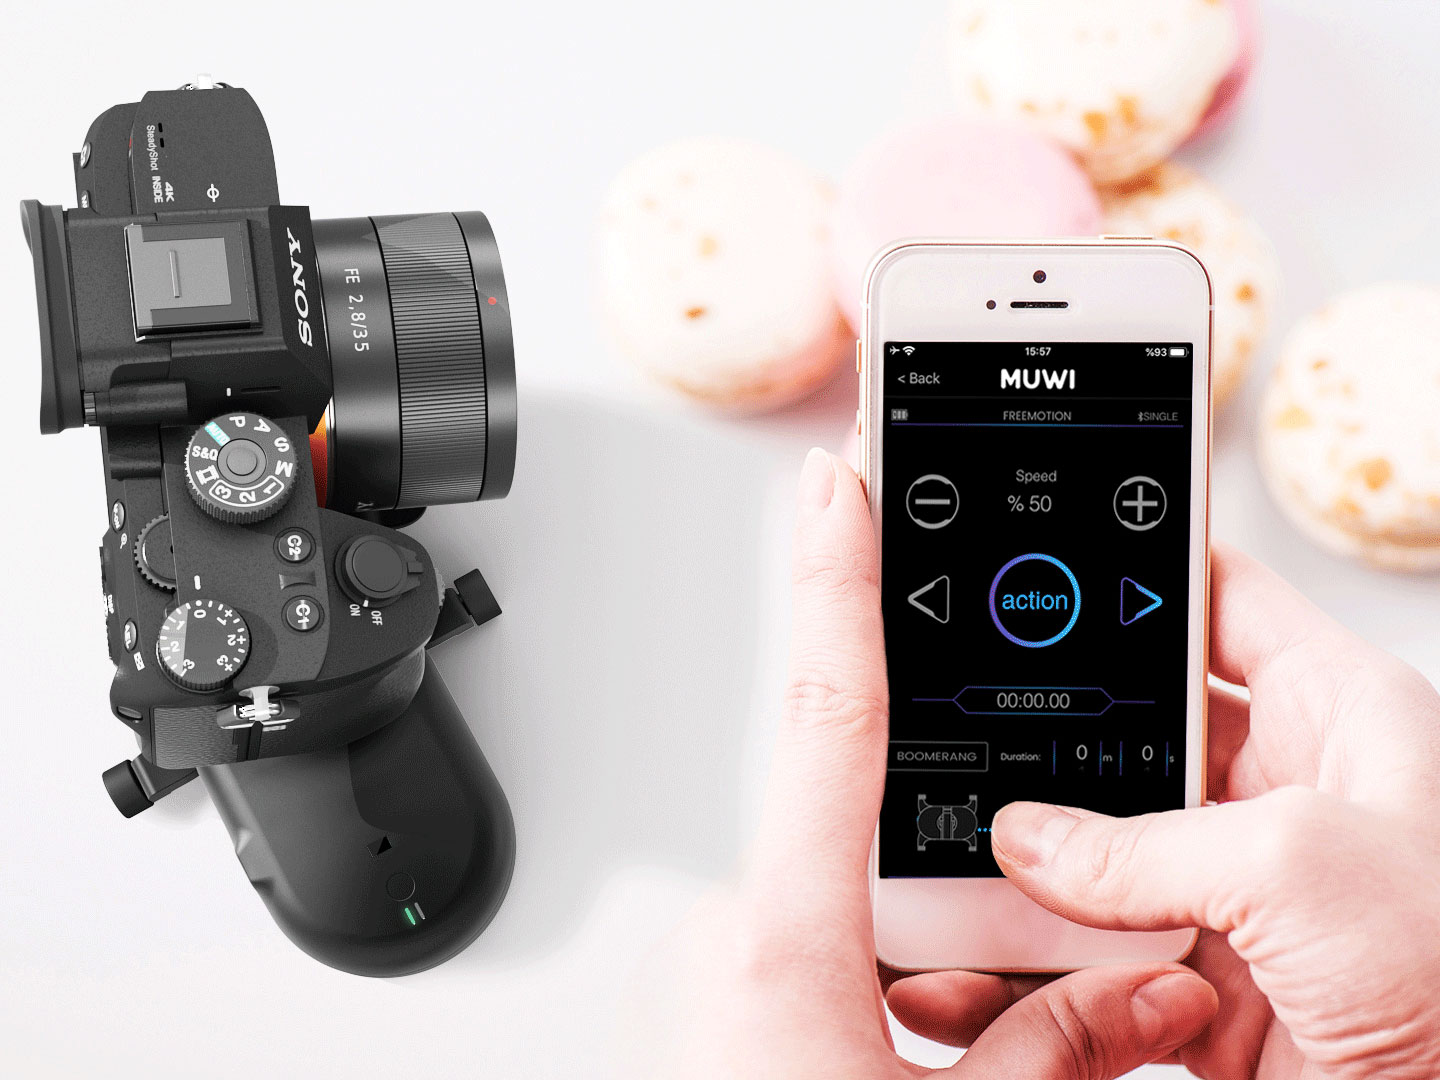 You can achieve motorized truck, pan and dolly shots by using Flow X with MUWI.